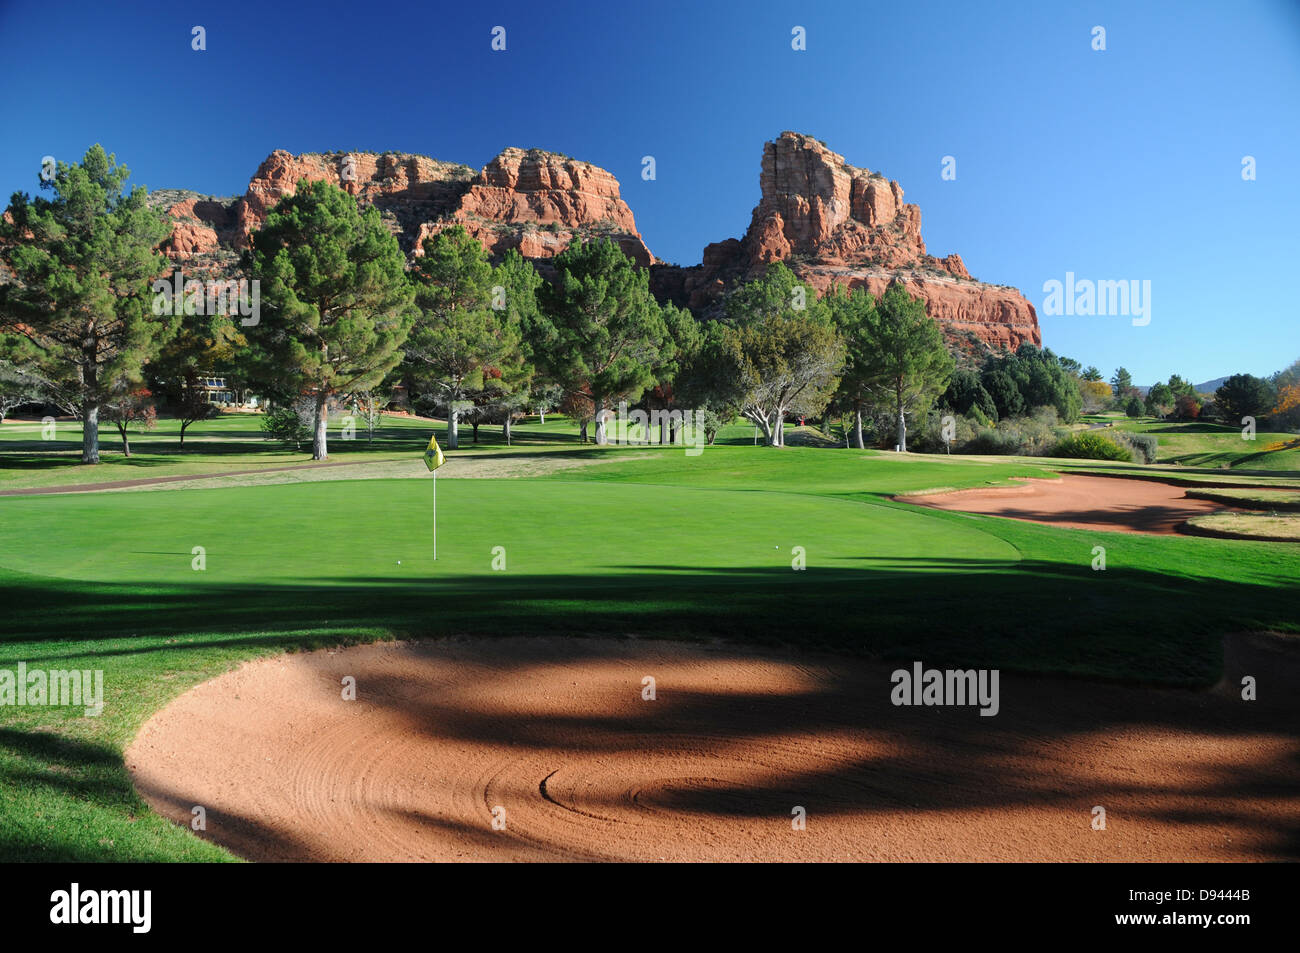 Oak Creek Country Club golf course in Sedona, Arizona surrounded by red rock formations - Stock Image